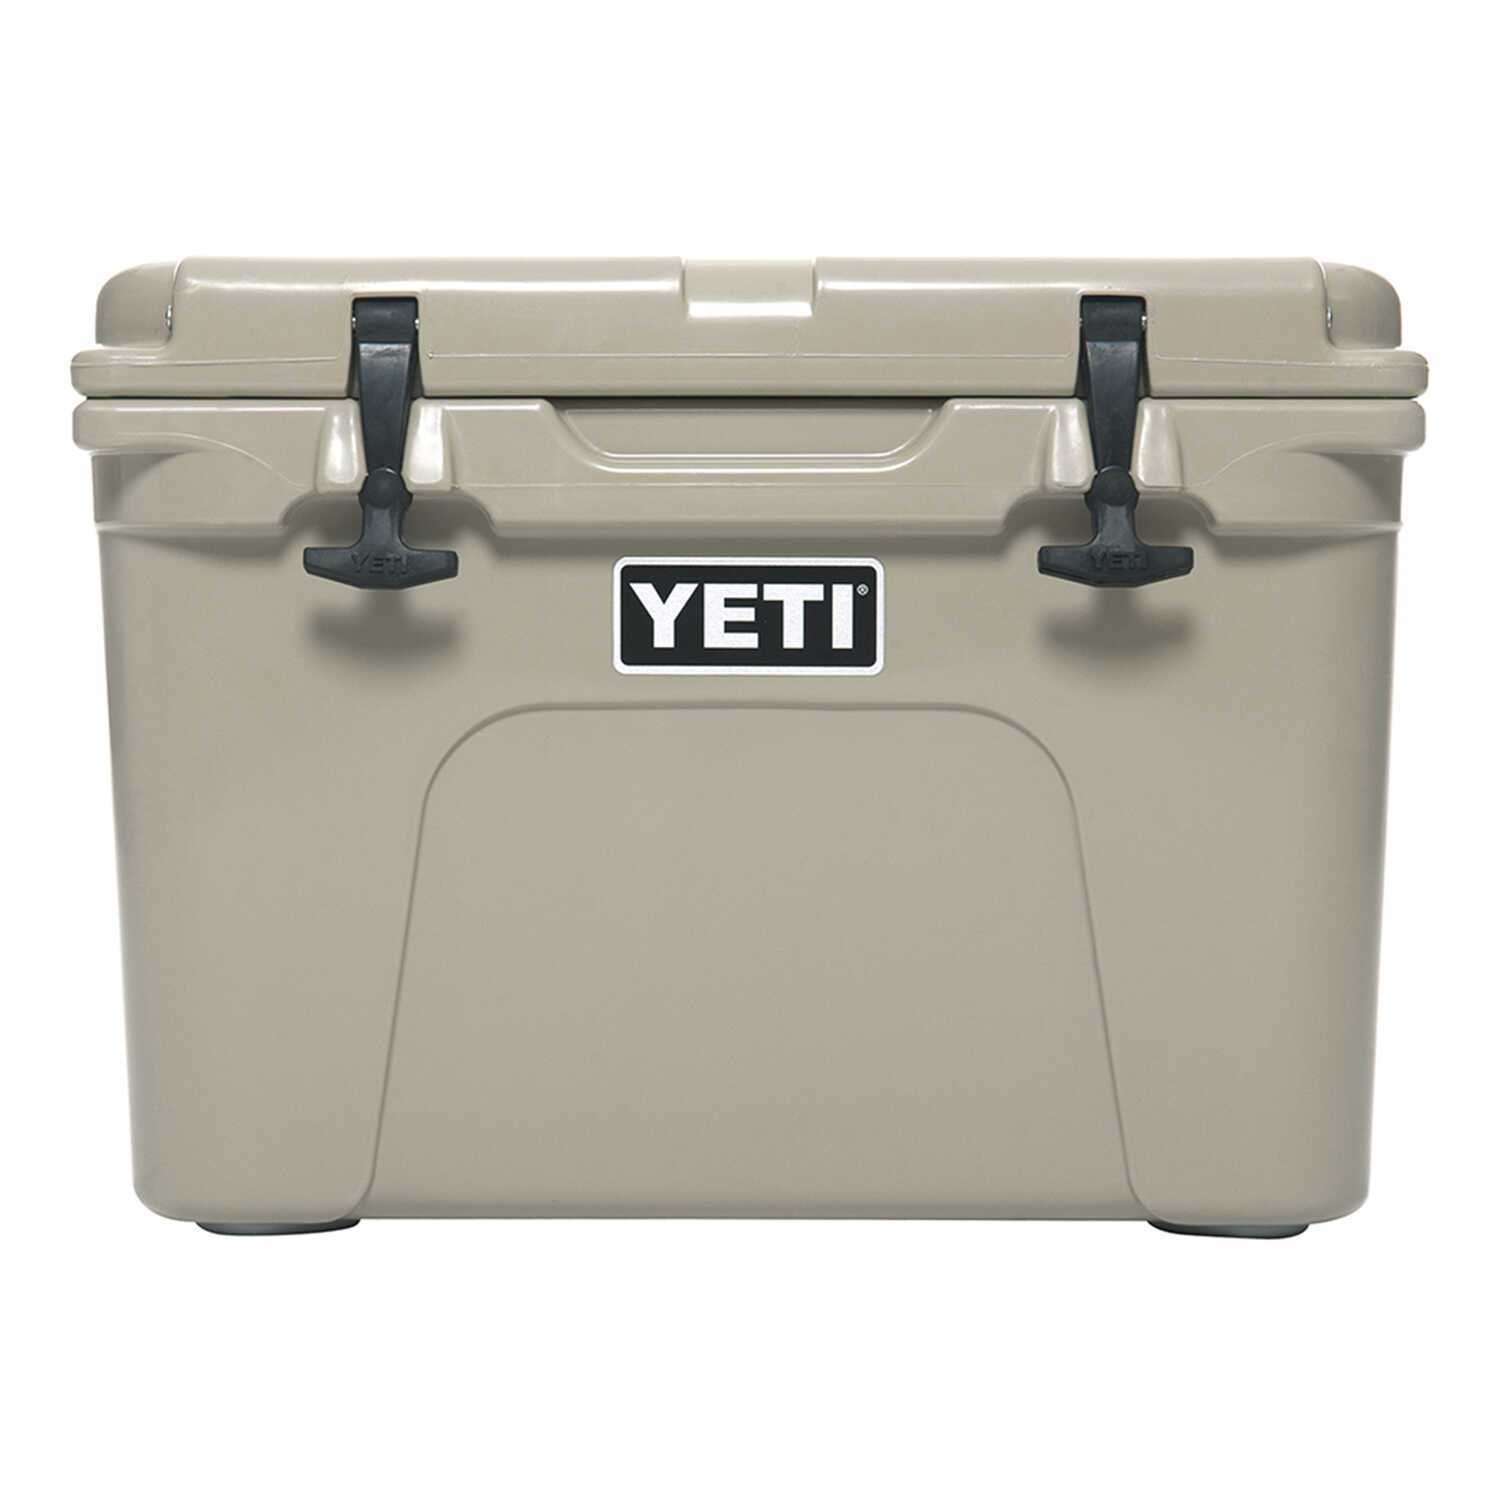 YETI  Tundra 35  Cooler  Tan